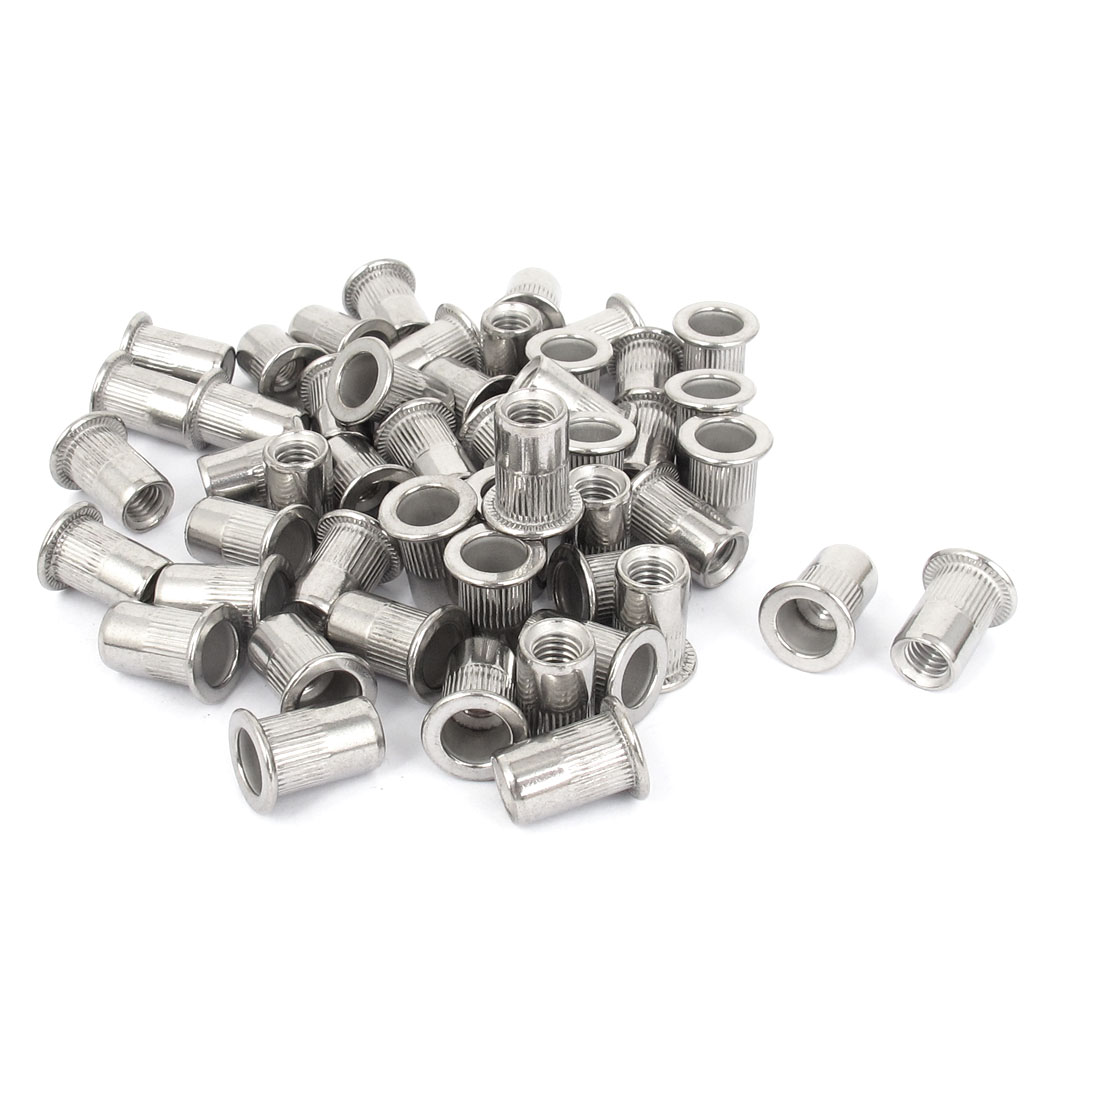 50 Pcs M6x15mm Flat Head Blind Rivet Nut Inserts Nutserts Silver Tone